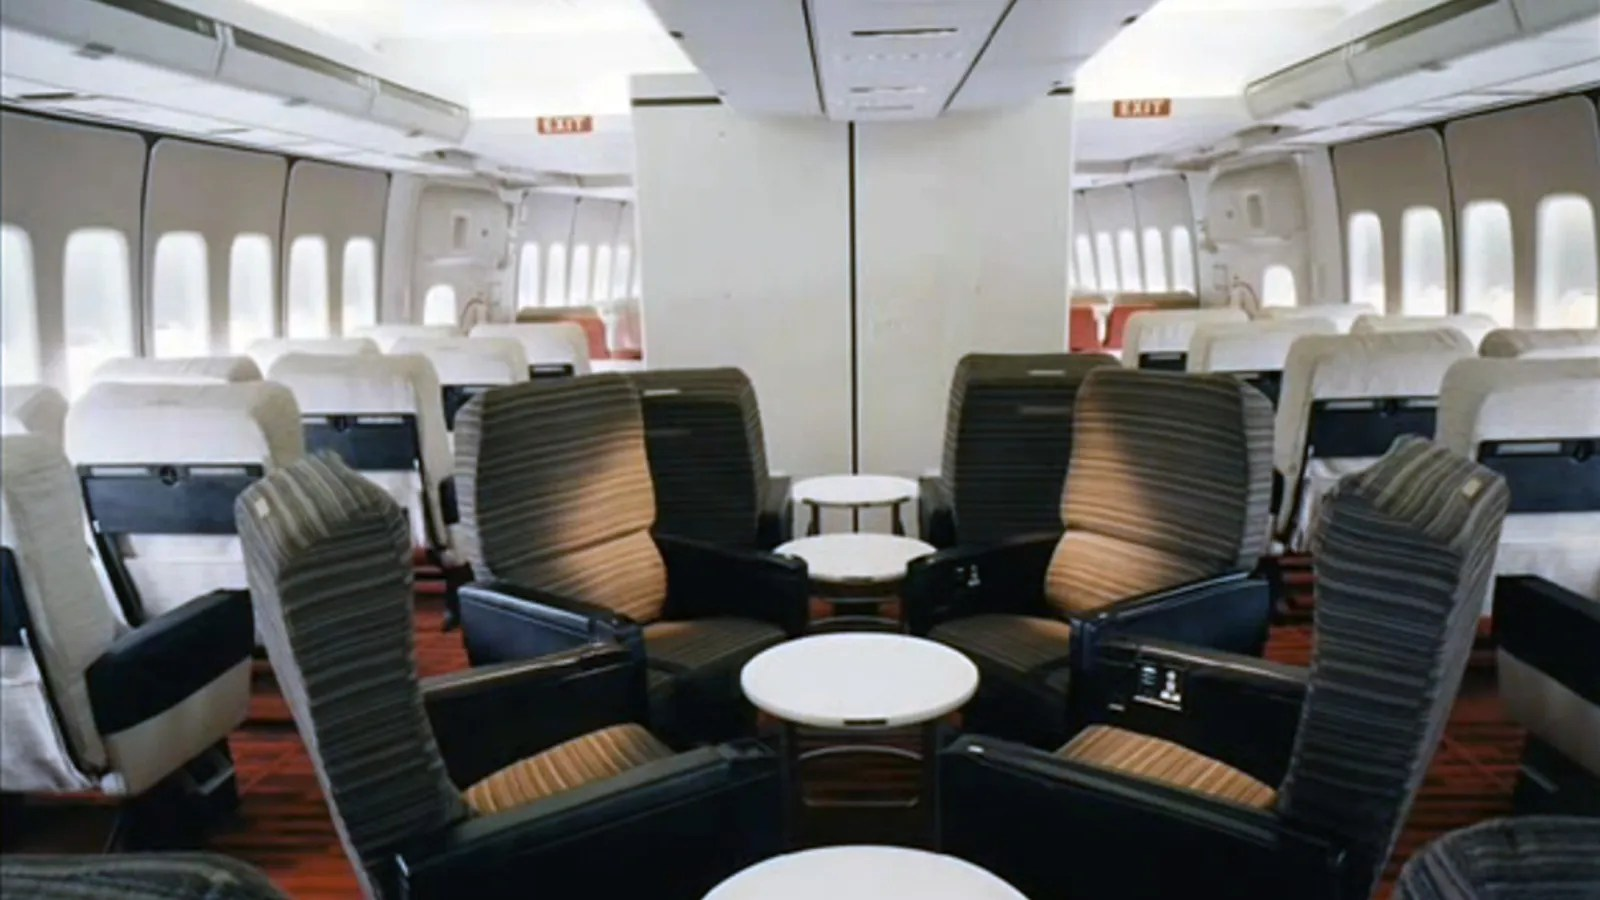 hight resolution of diagram of inside of a 747